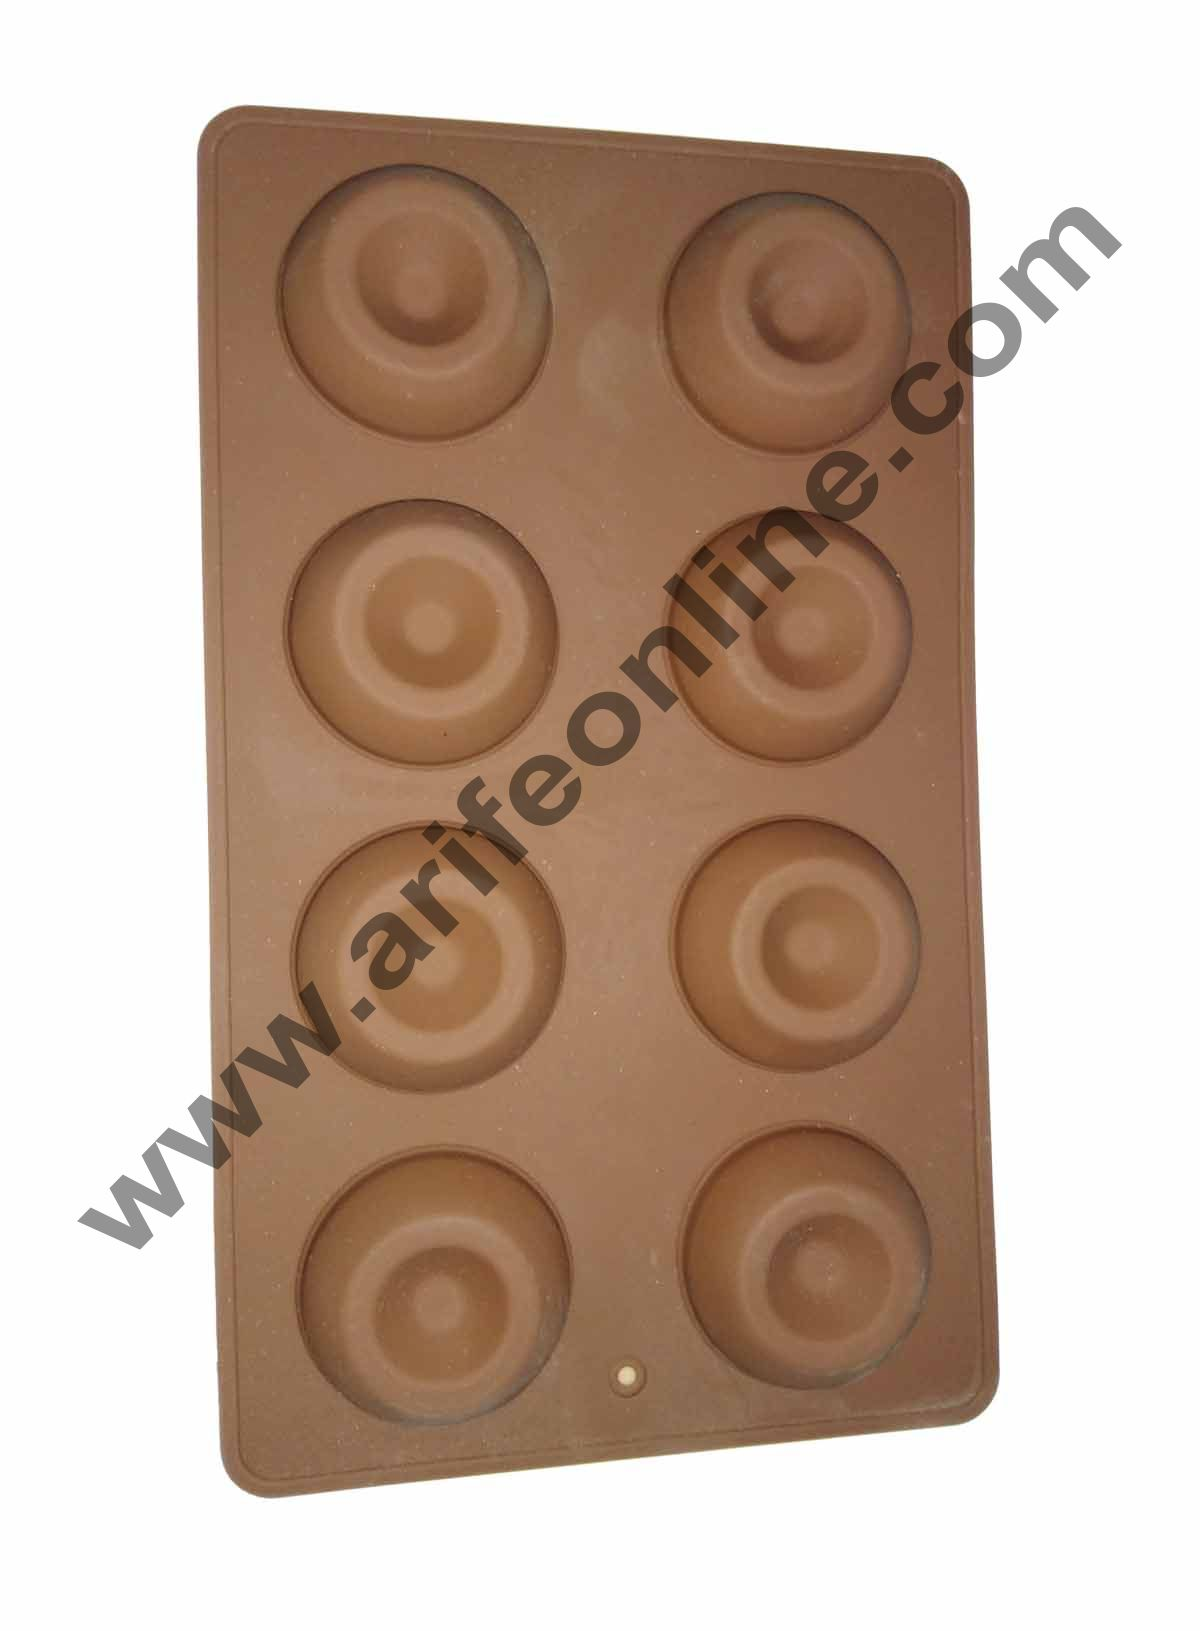 Cake Decor 8 in 1 Silicon Bakeware Donut Round Shape Cupcake Moulds Muffin Mould